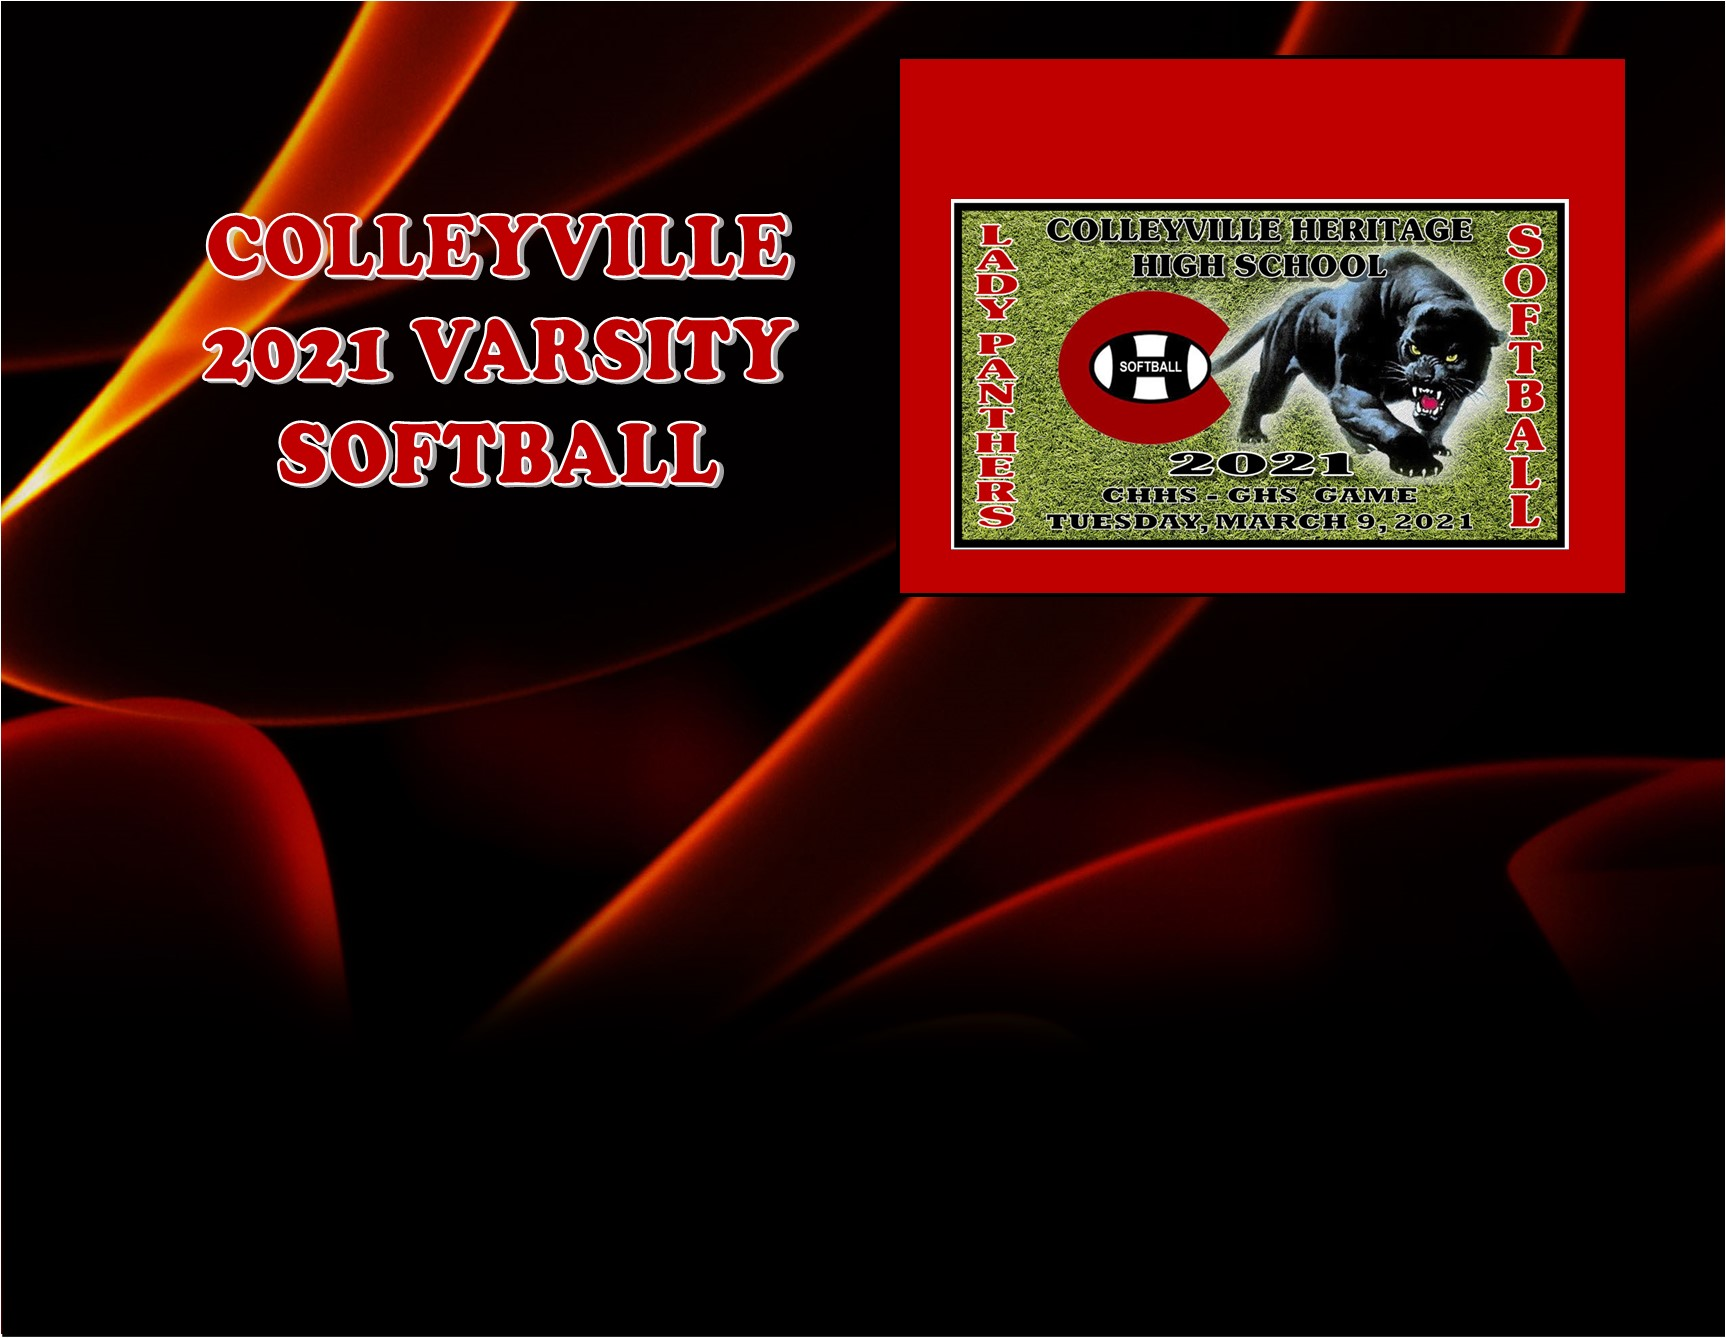 GCISD Softball: Colleyville Panthers Fly Past Grapevine Mustangs 7-2